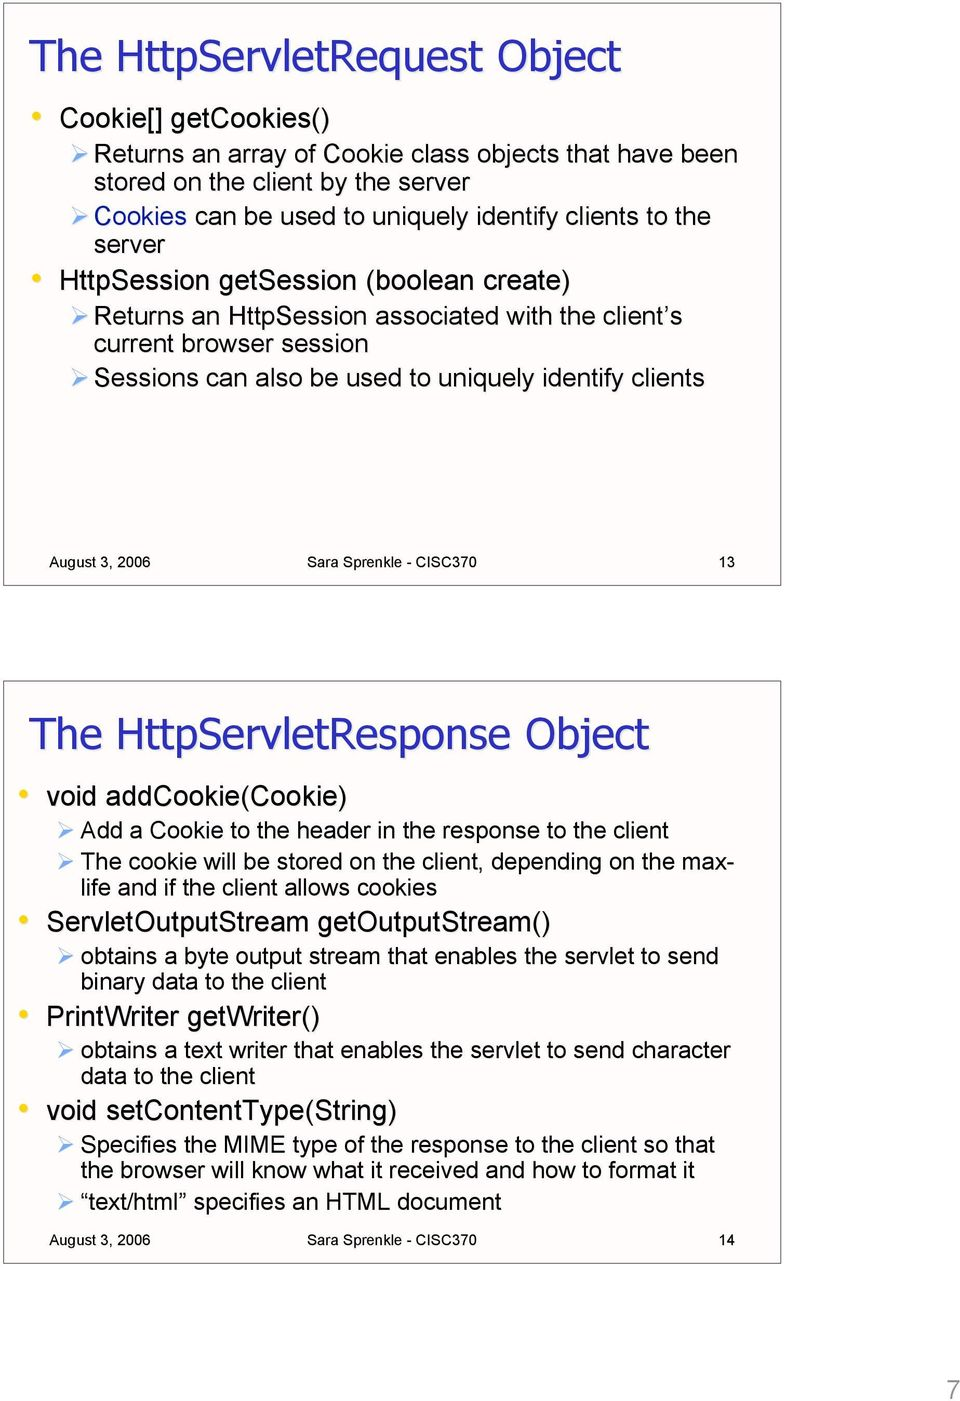 CISC370 13 The HttpServletResponse Object void addcookie(cookie) Add a Cookie to the header in the response to the client The cookie will be stored on the client, depending on the max- life and if